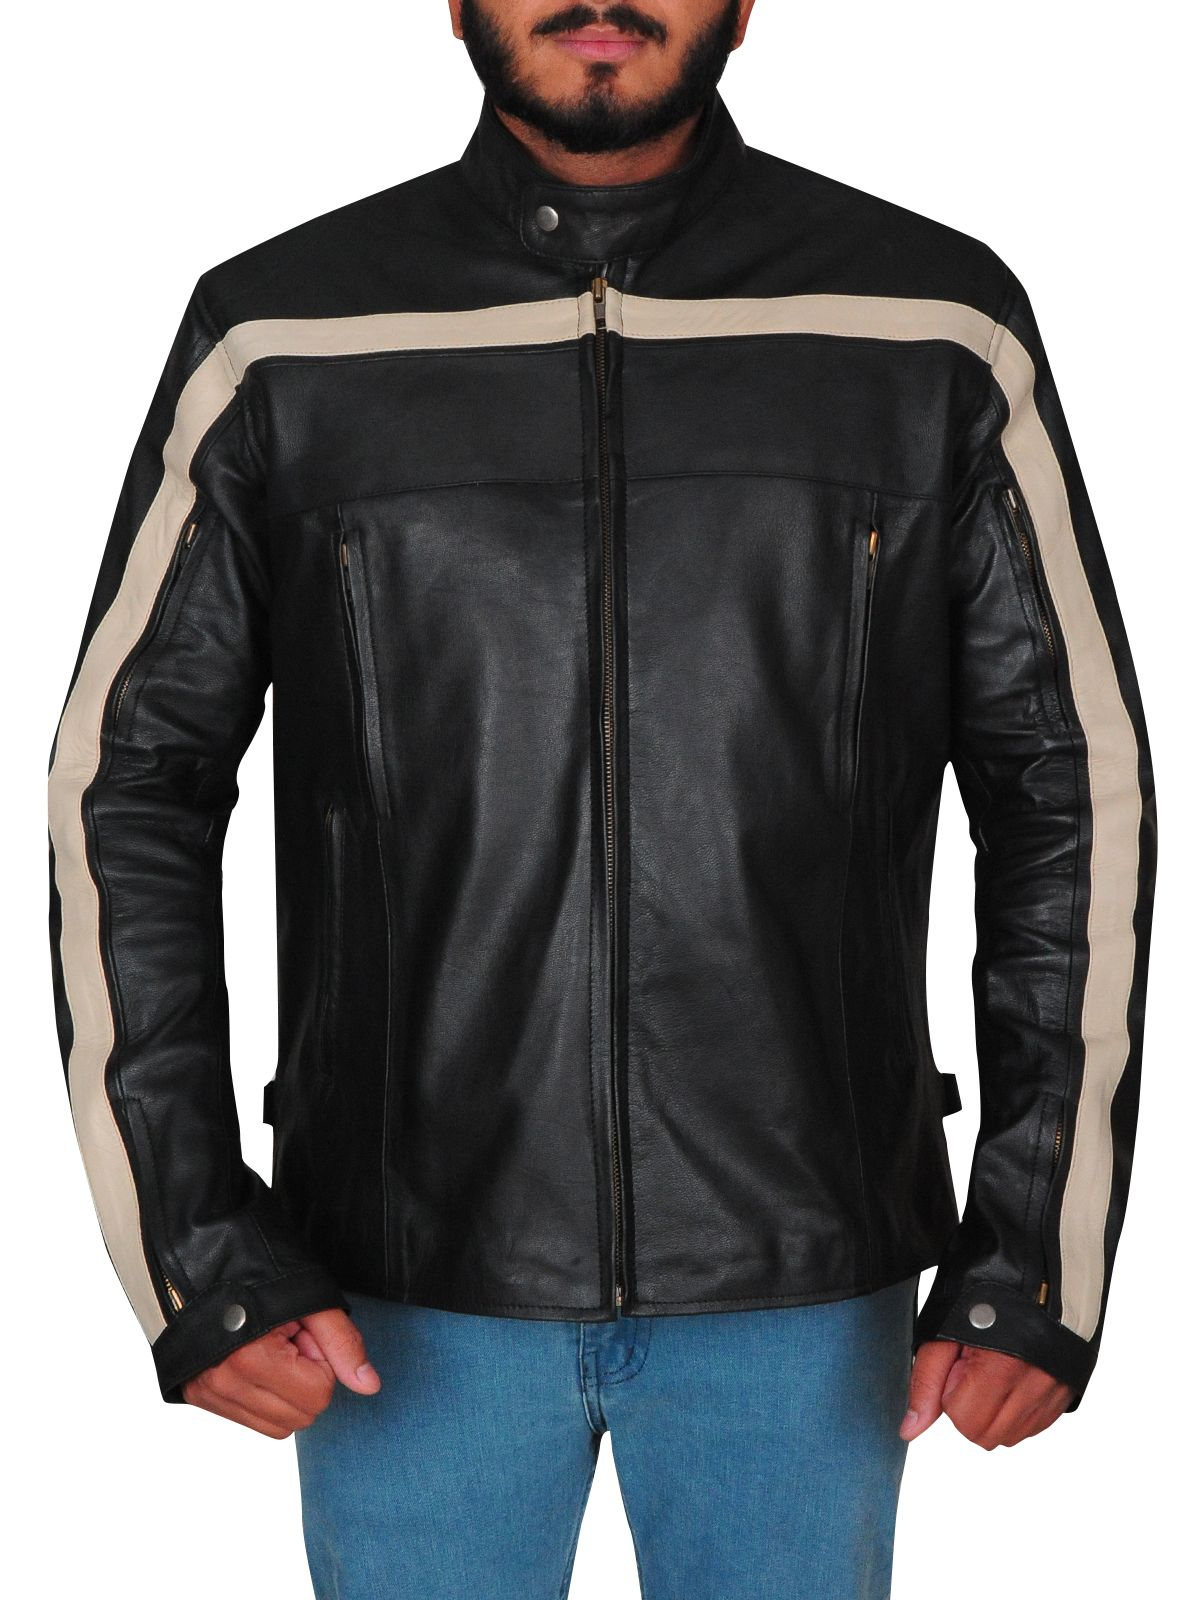 We are offering the classic JoeRocket Distinctive Leather